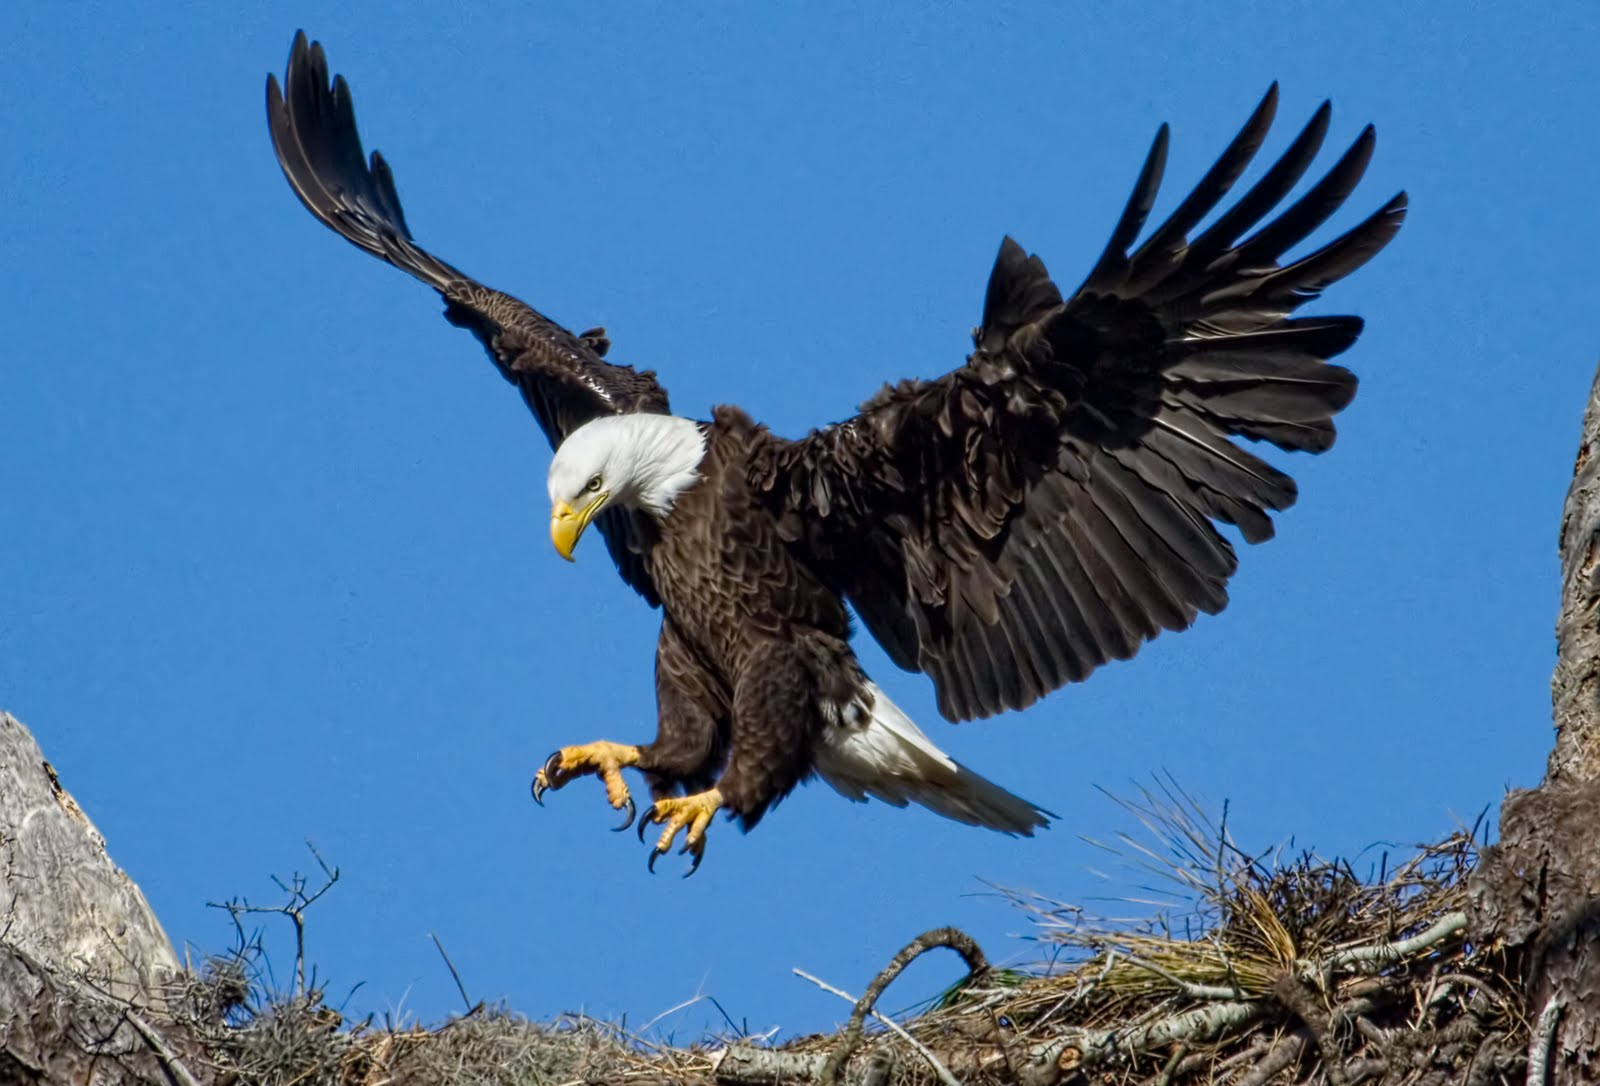 Eagle Landing in a Nest 795.83 Kb